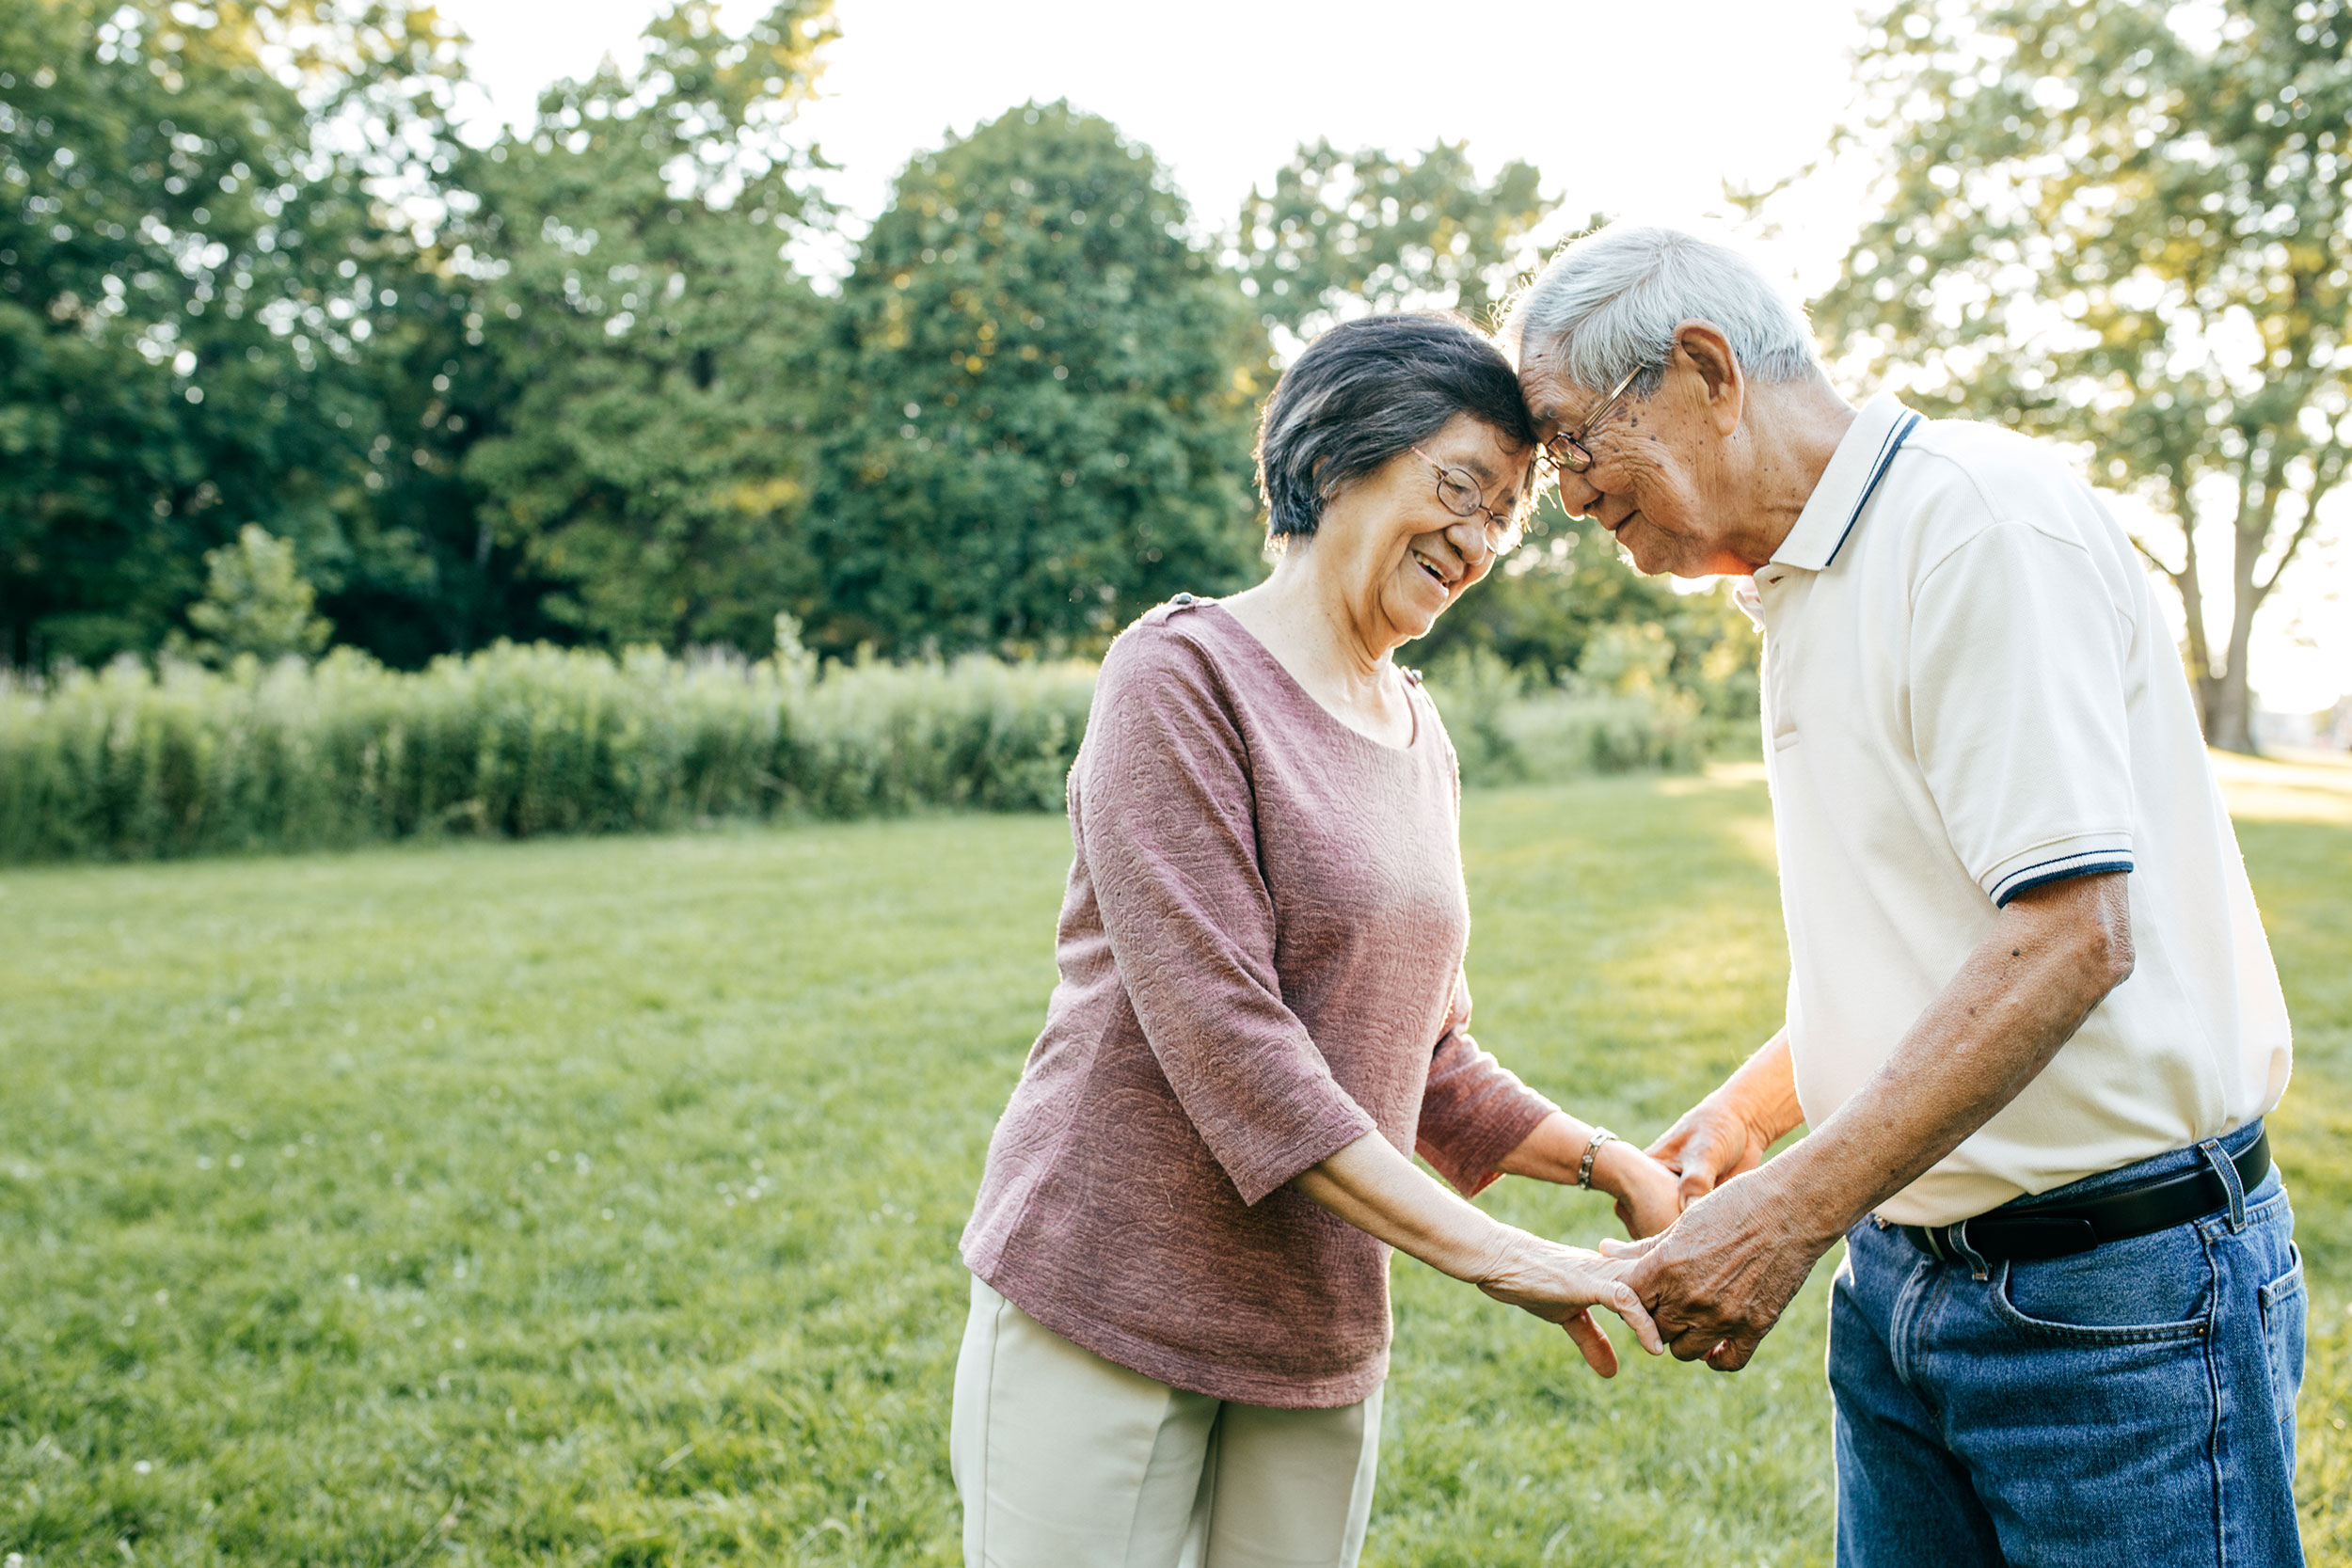 Photo of a couple in their 60s or 70s holding hands while pressing their foreheads against one another and smiling.